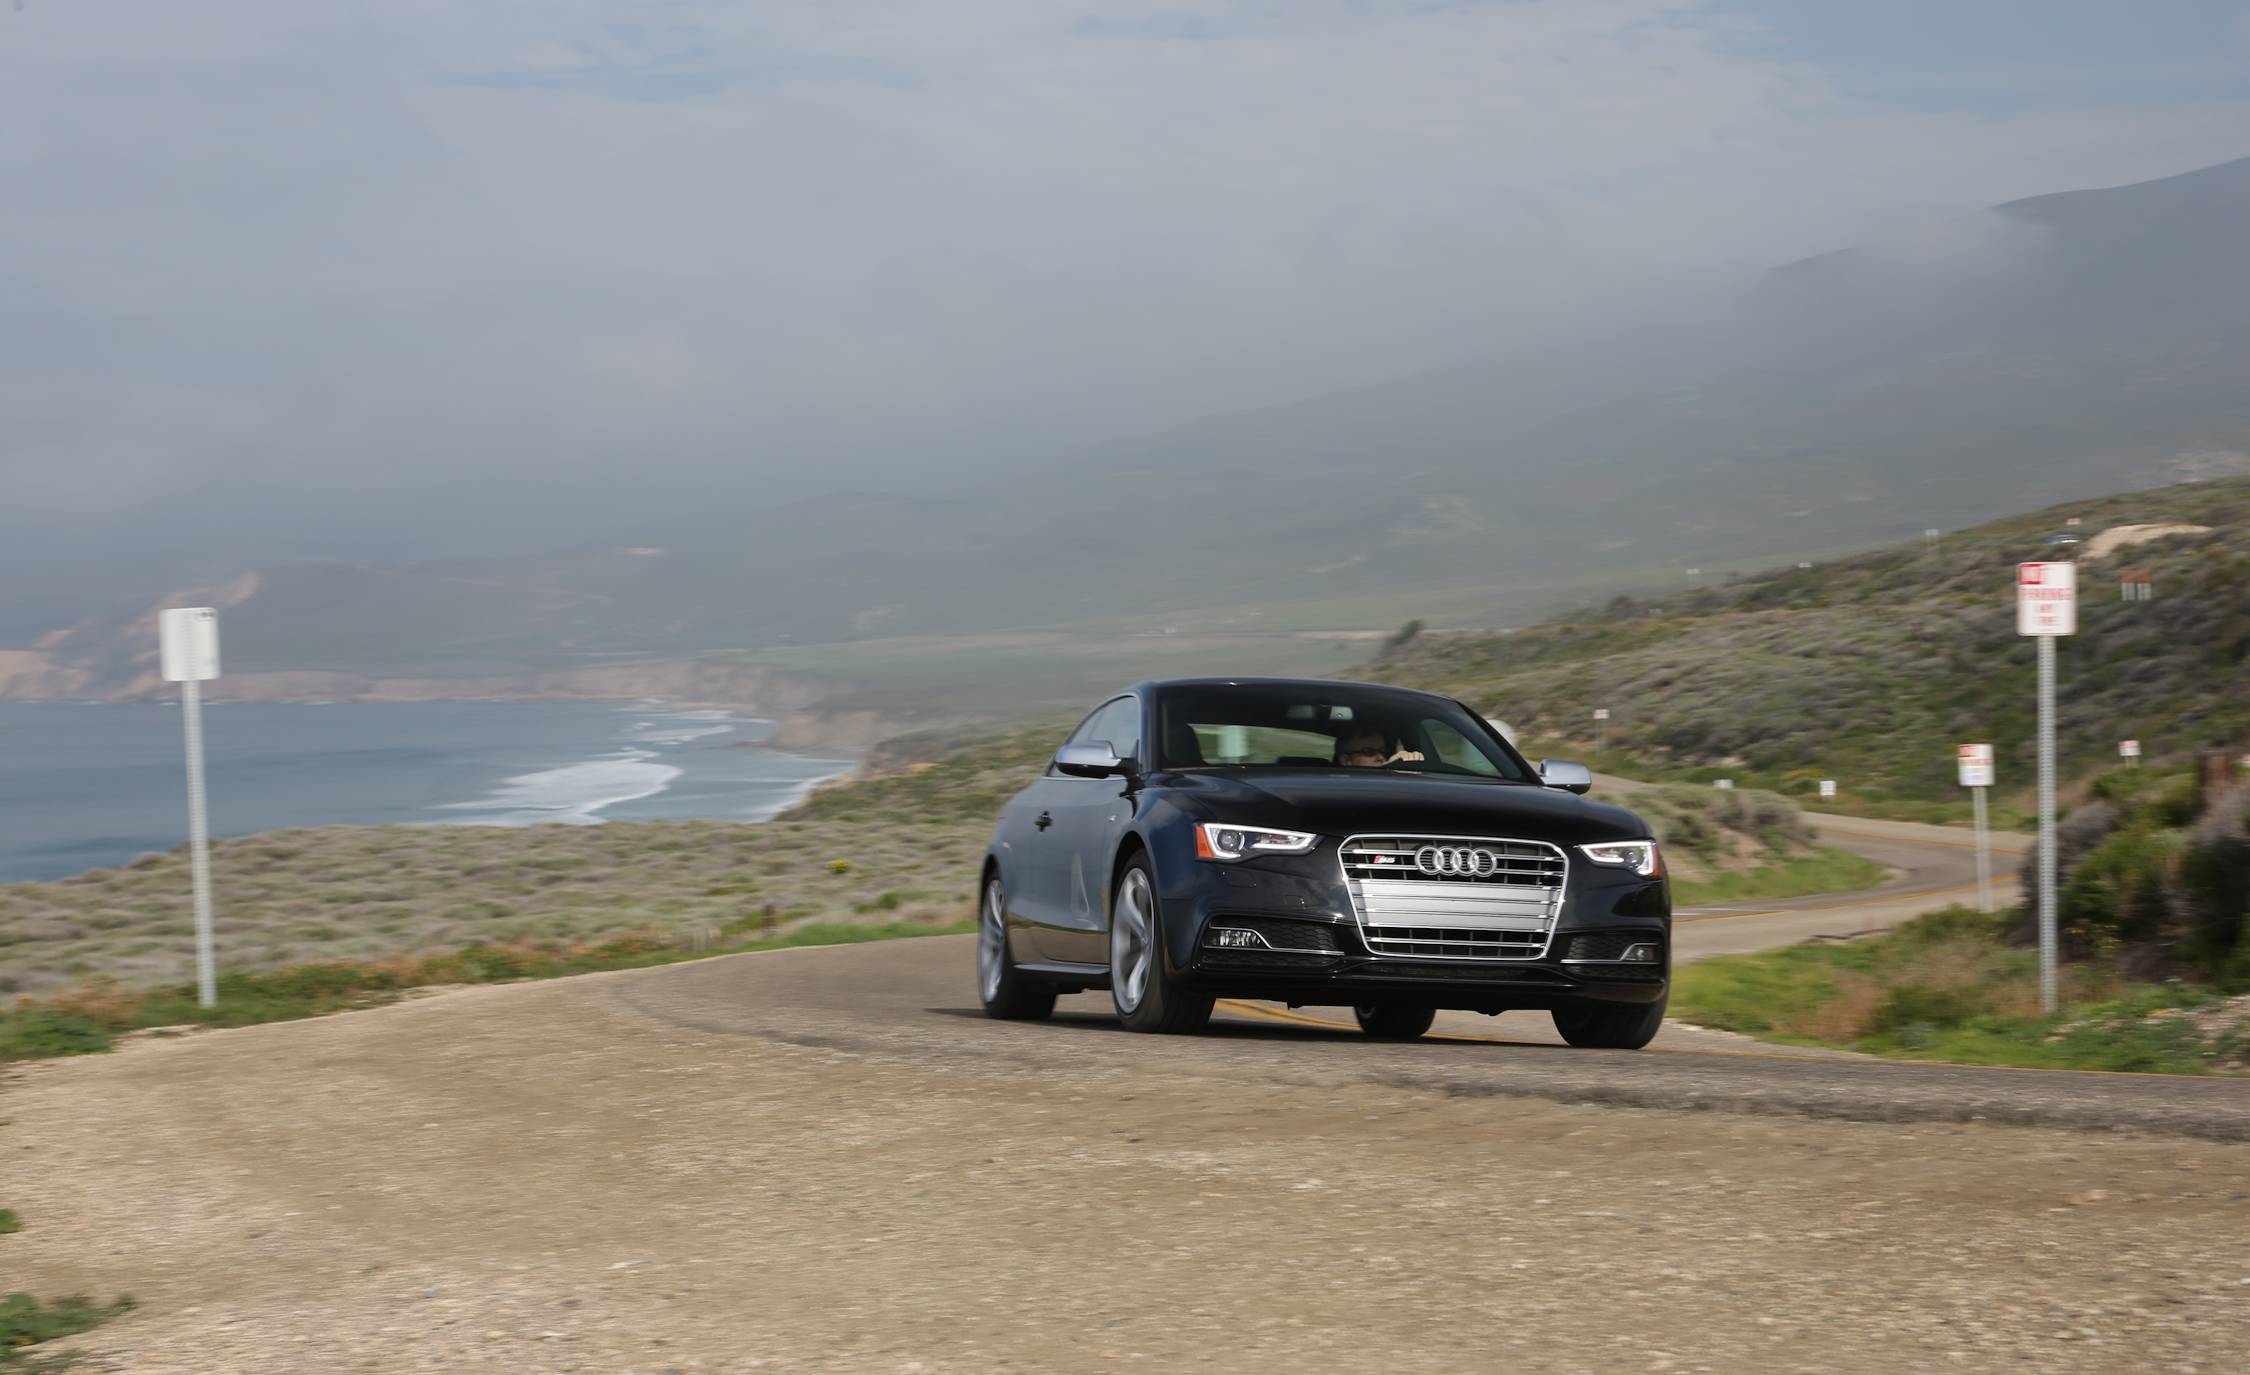 Audi S5 2015 Front View